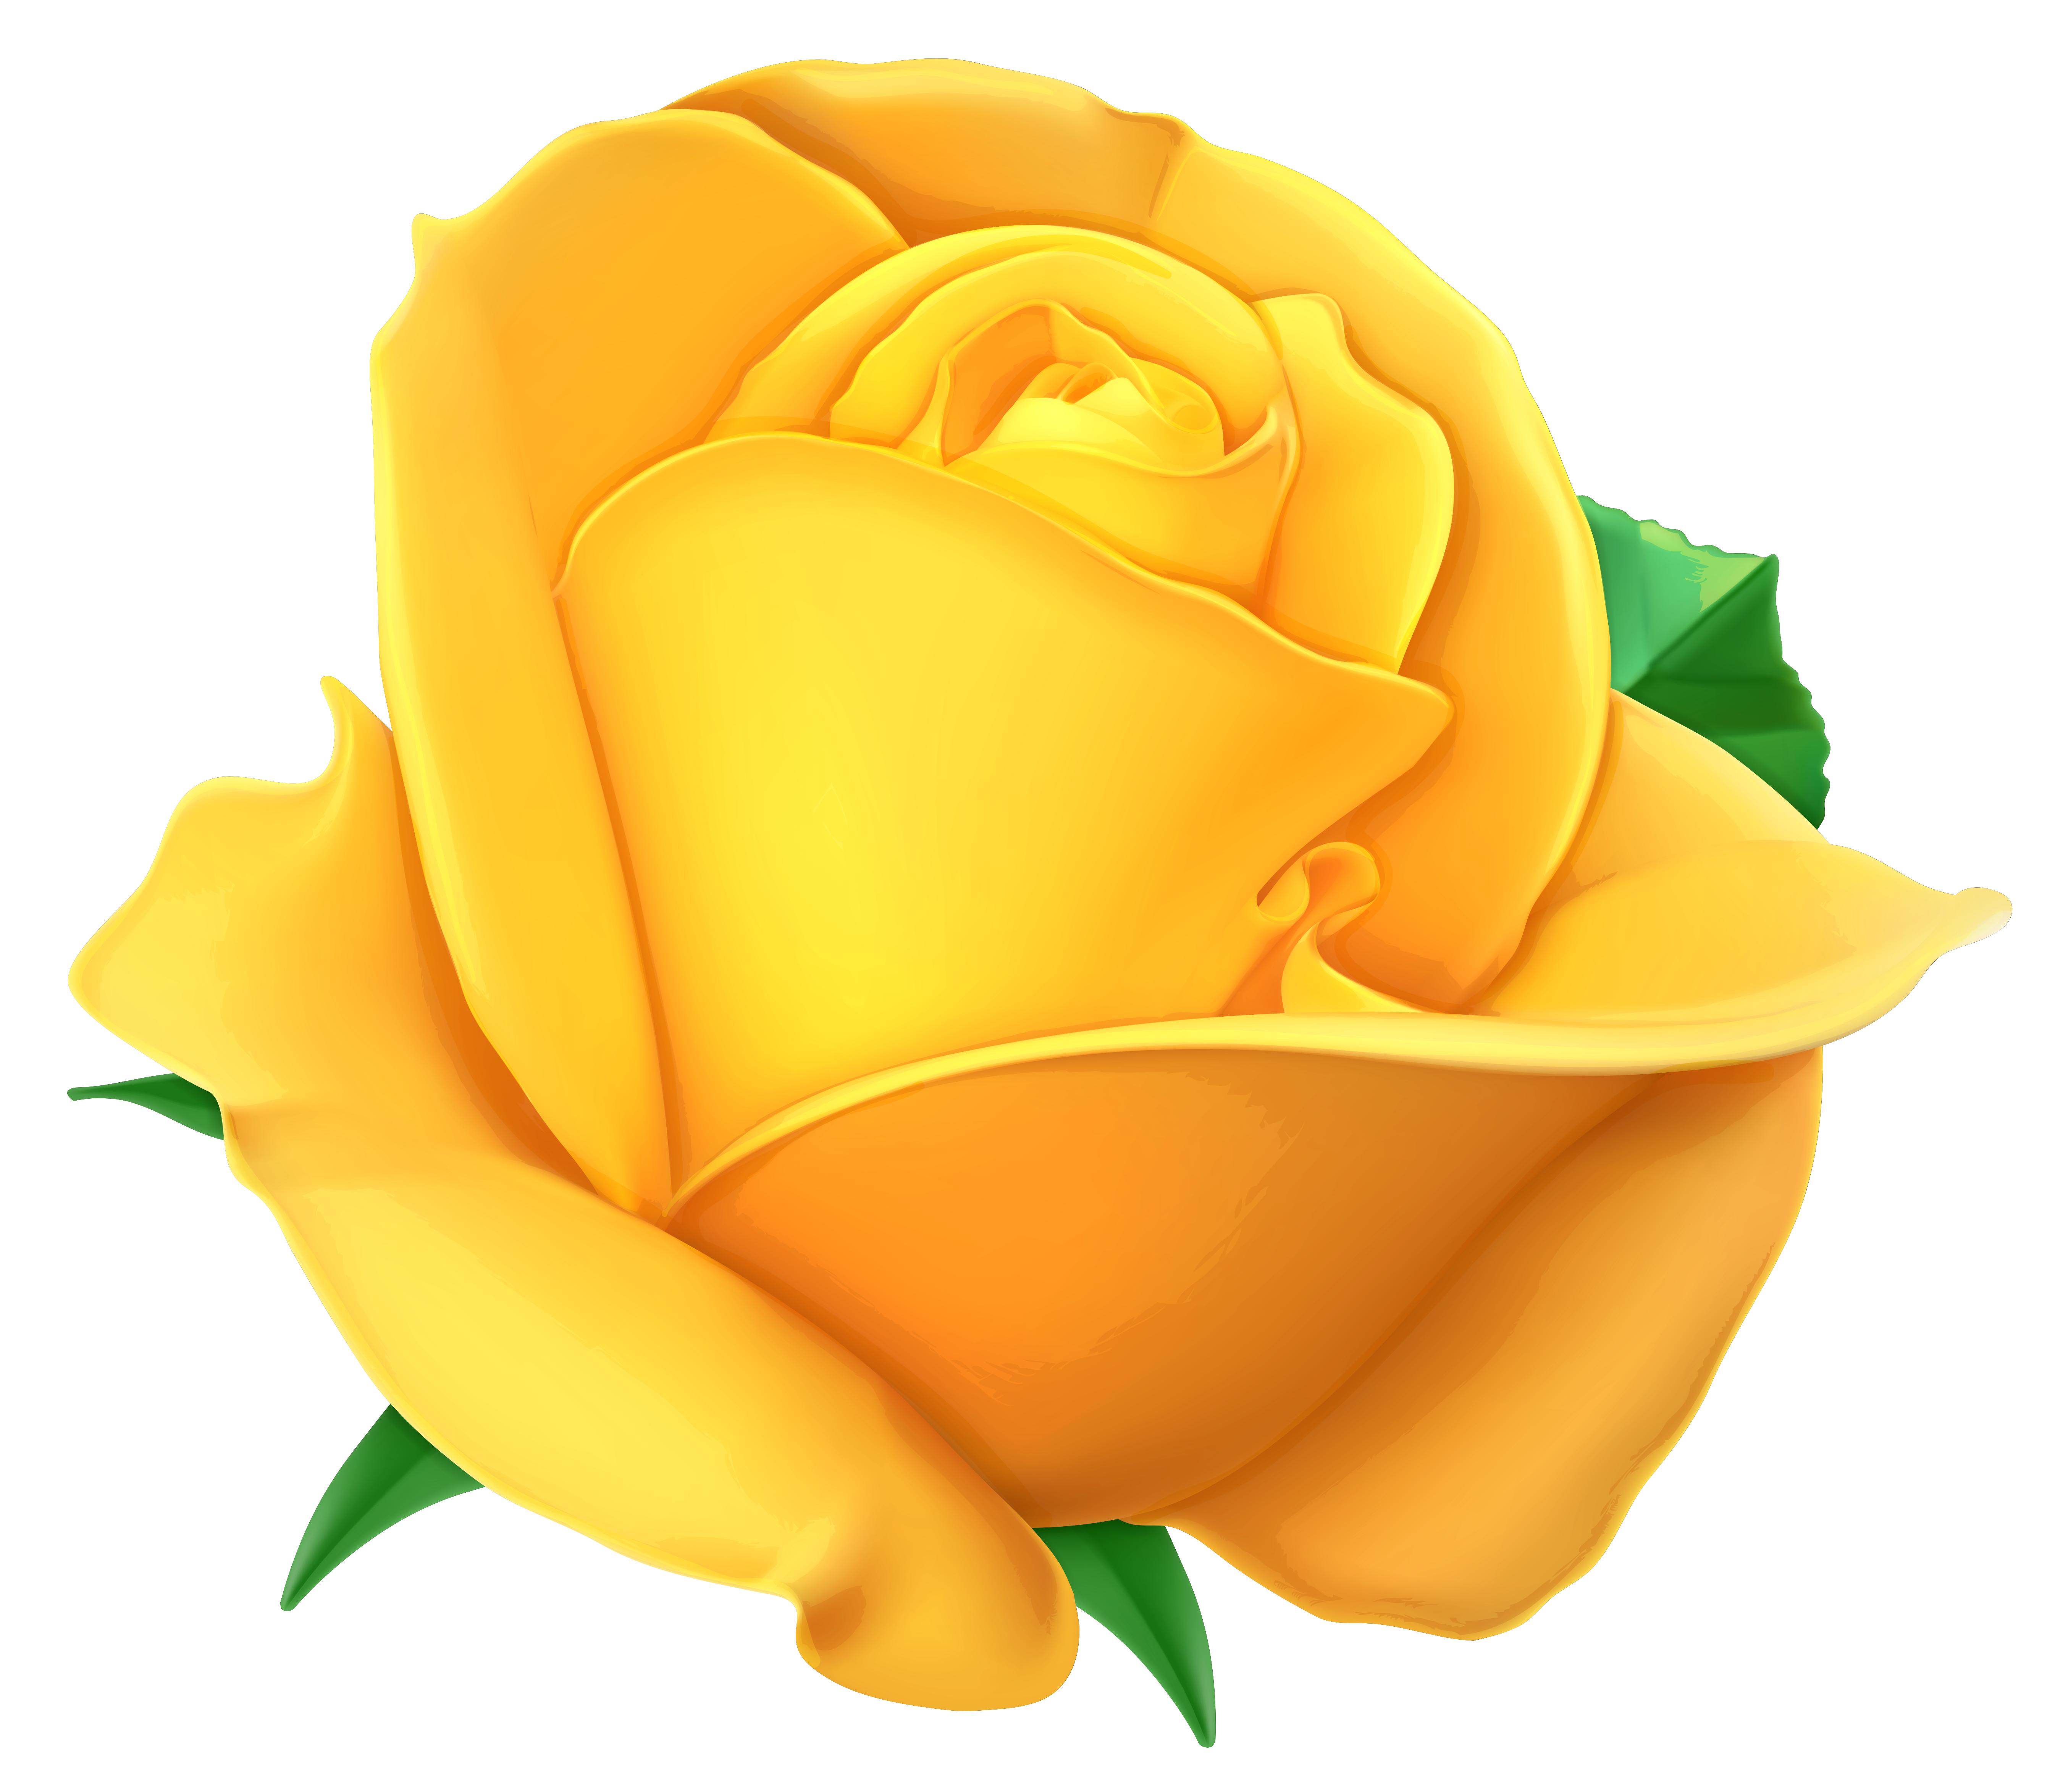 Yellow rose clip art free clipart best - Yellow rose images hd ...